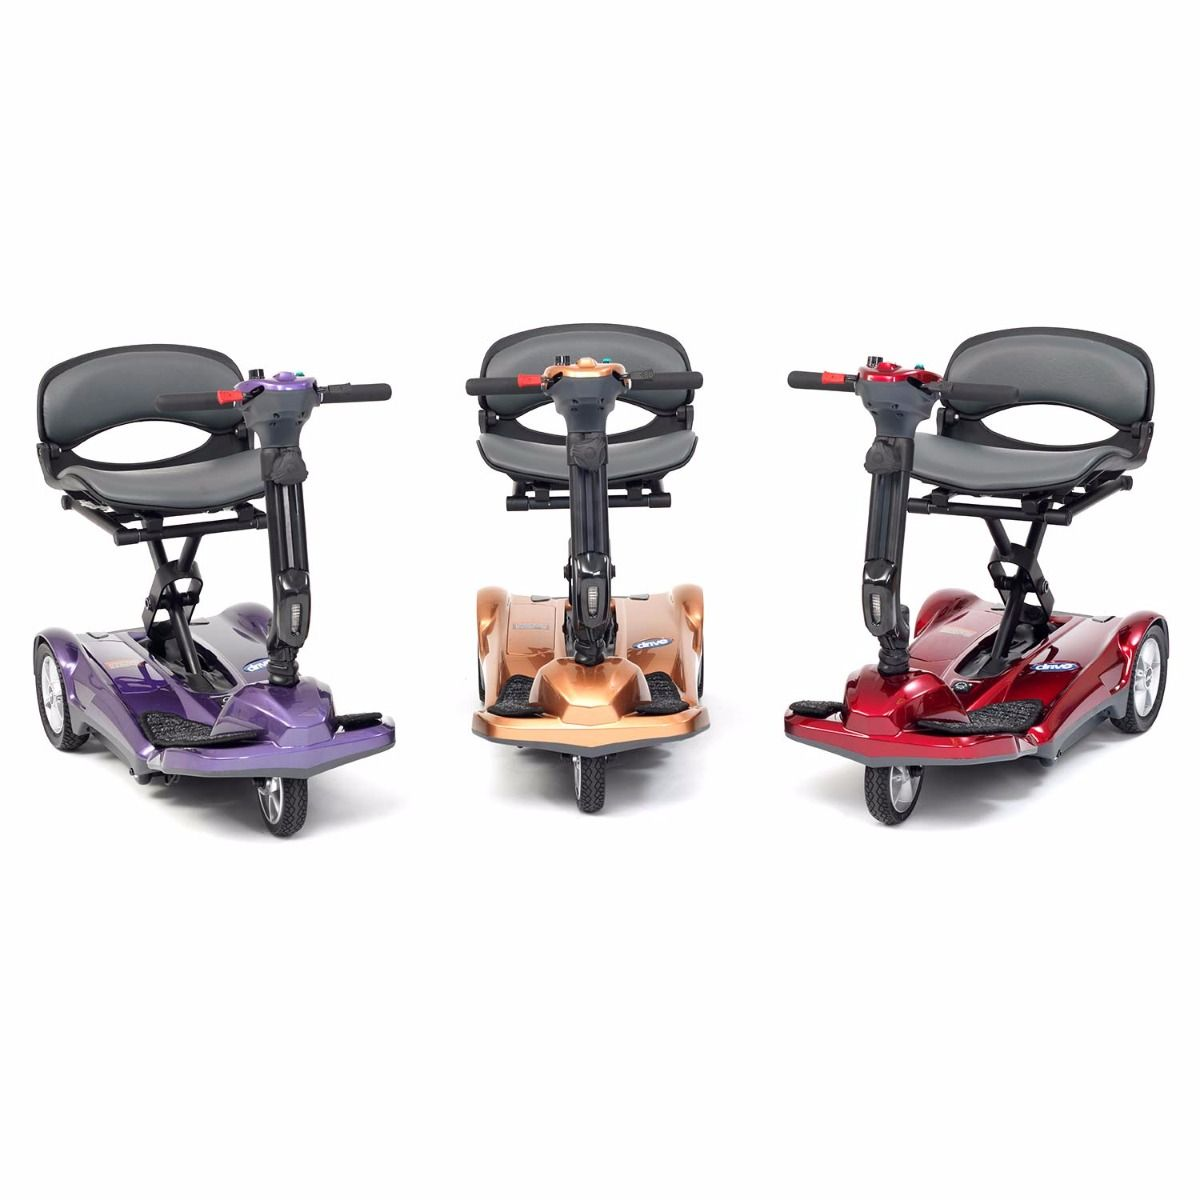 Pro Rider Travelite Compact Mobility Scooter - perfect for disabled holidays